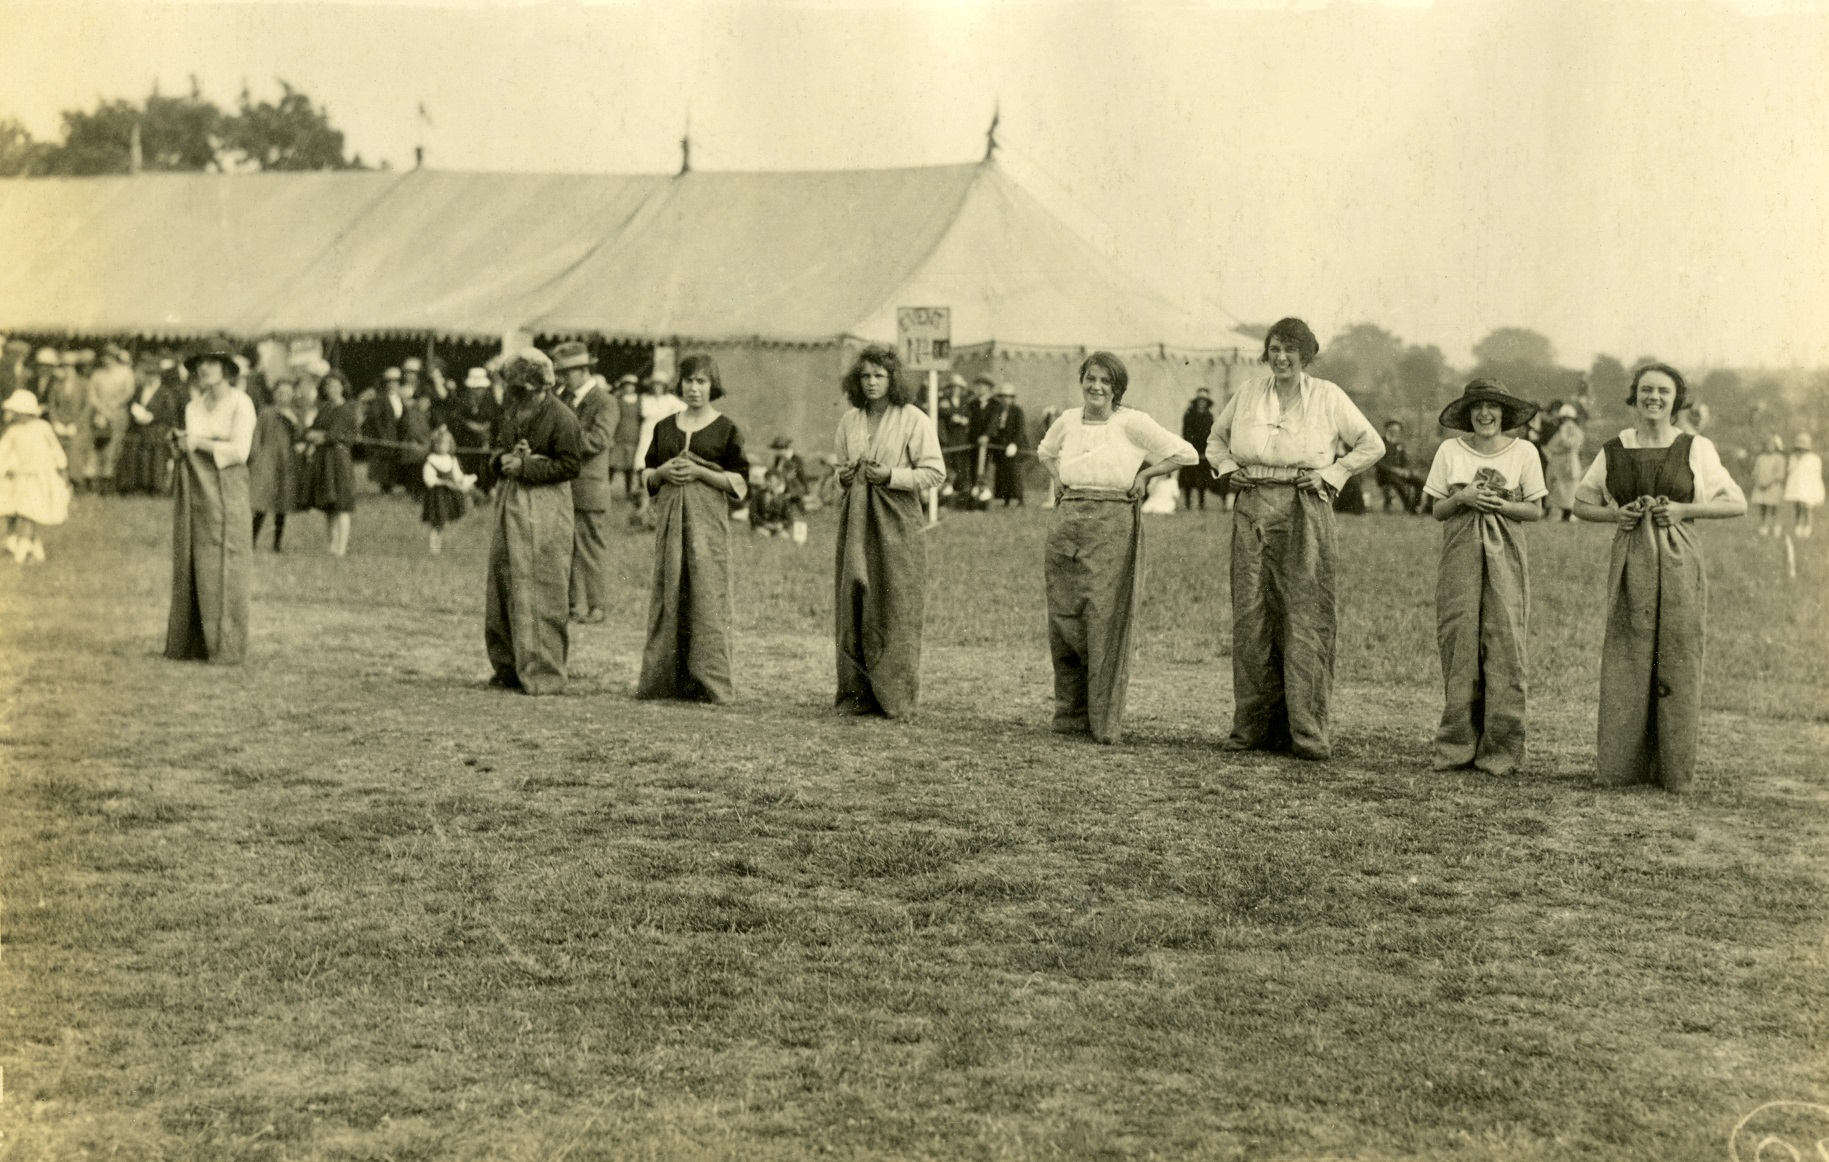 A sack race at the Needler's sports day in 1925.